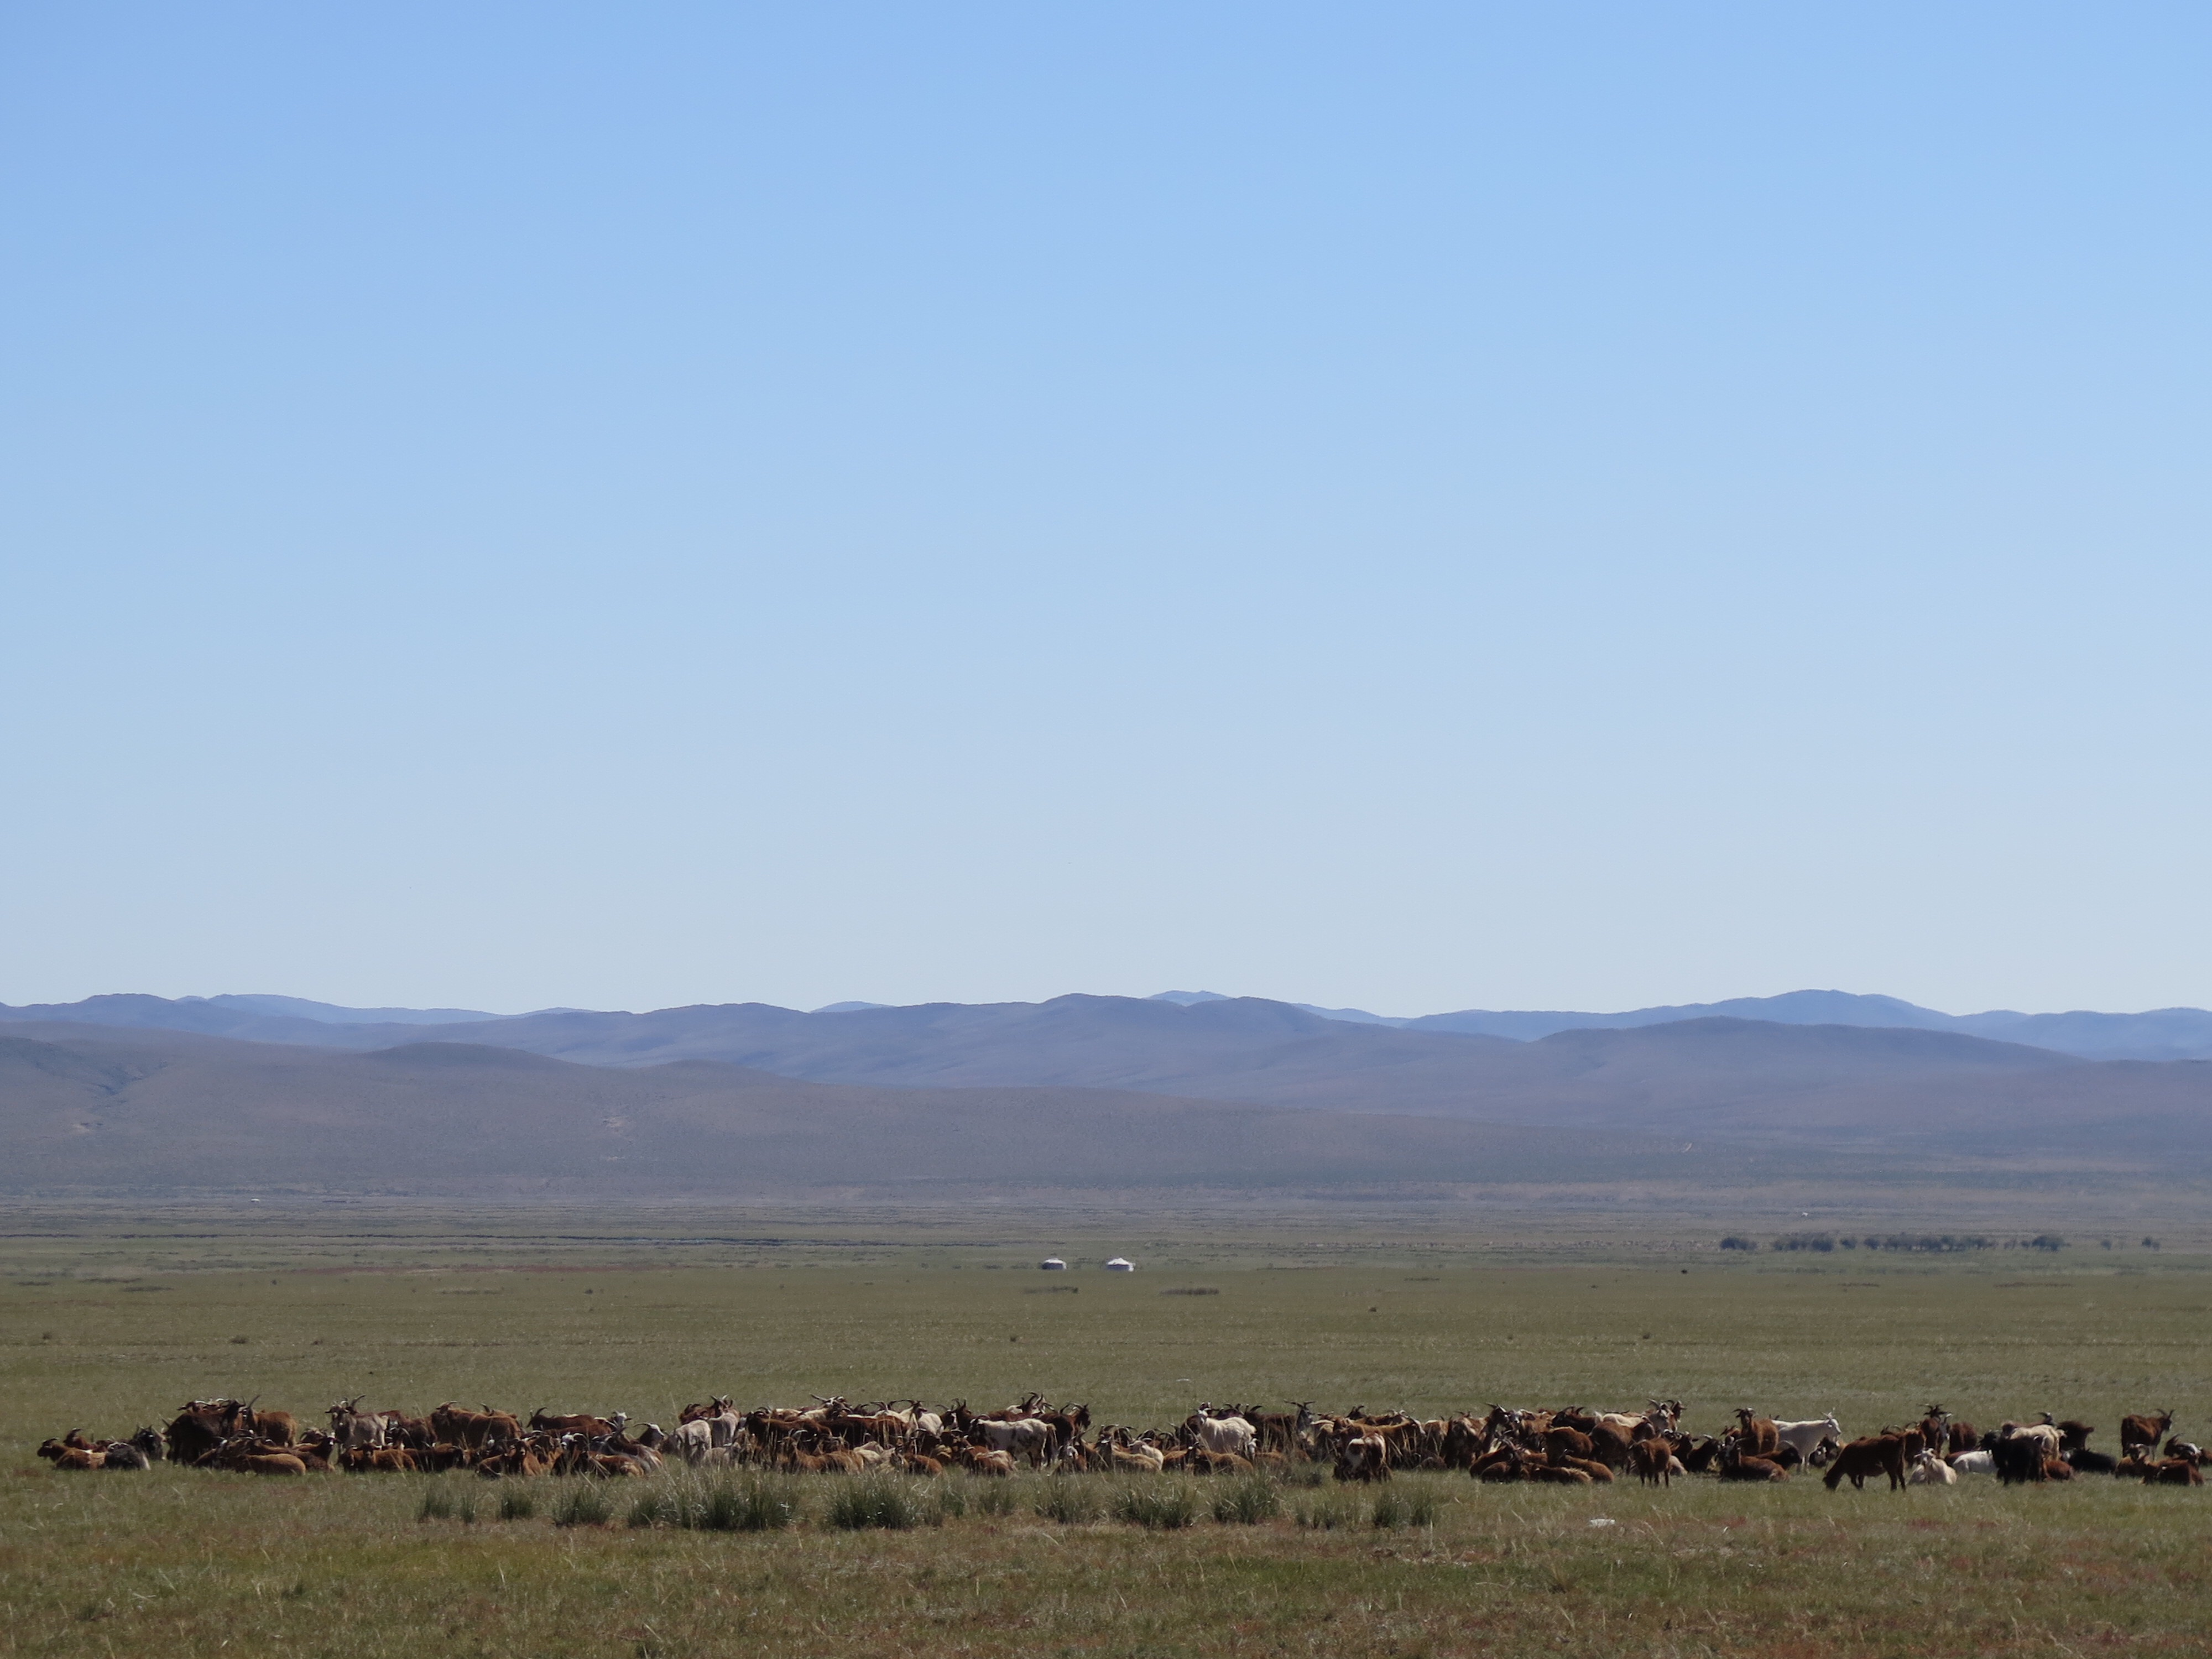 We thought this herd of goats was super cool. Really it was just the first of such herds we'd seen; they're everywhere. The only unusual thing about this one was that it was all goats, not a mix of goats and sheep.